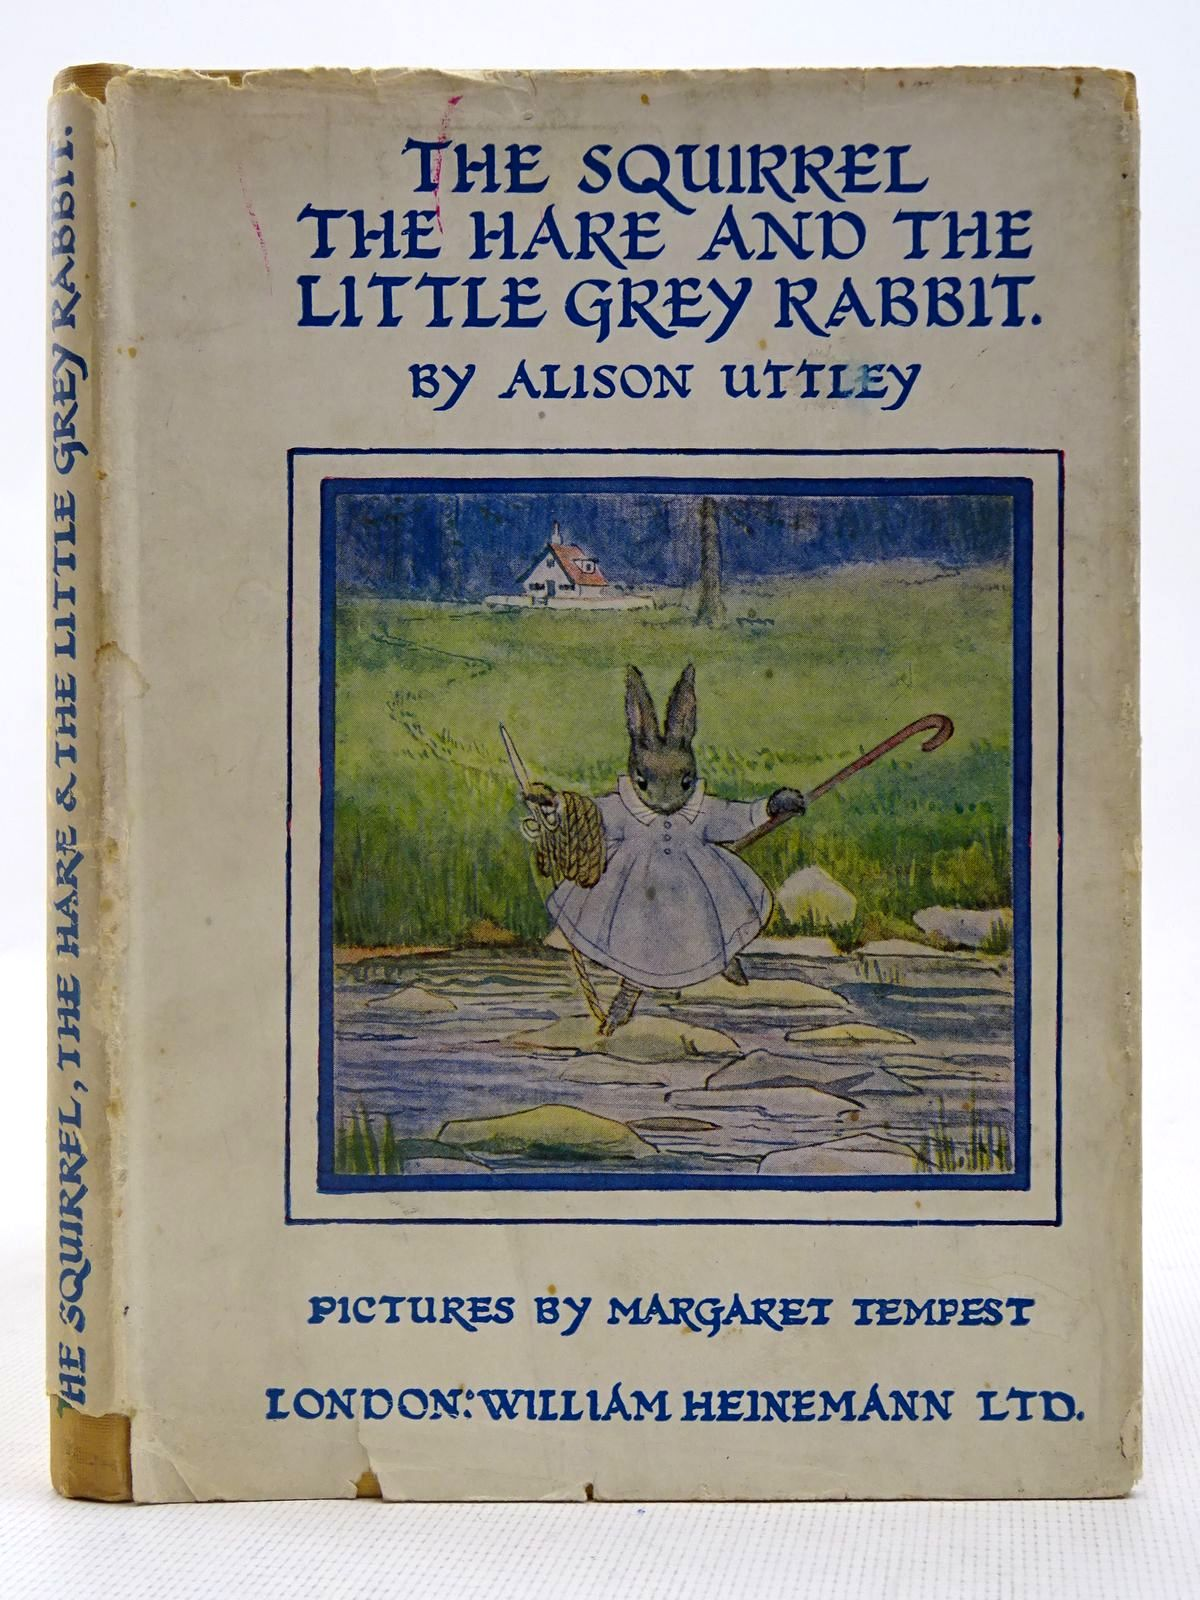 Photo of THE SQUIRREL, THE HARE AND THE LITTLE GREY RABBIT written by Uttley, Alison illustrated by Tempest, Margaret published by William Heinemann Ltd. (STOCK CODE: 2128241)  for sale by Stella & Rose's Books